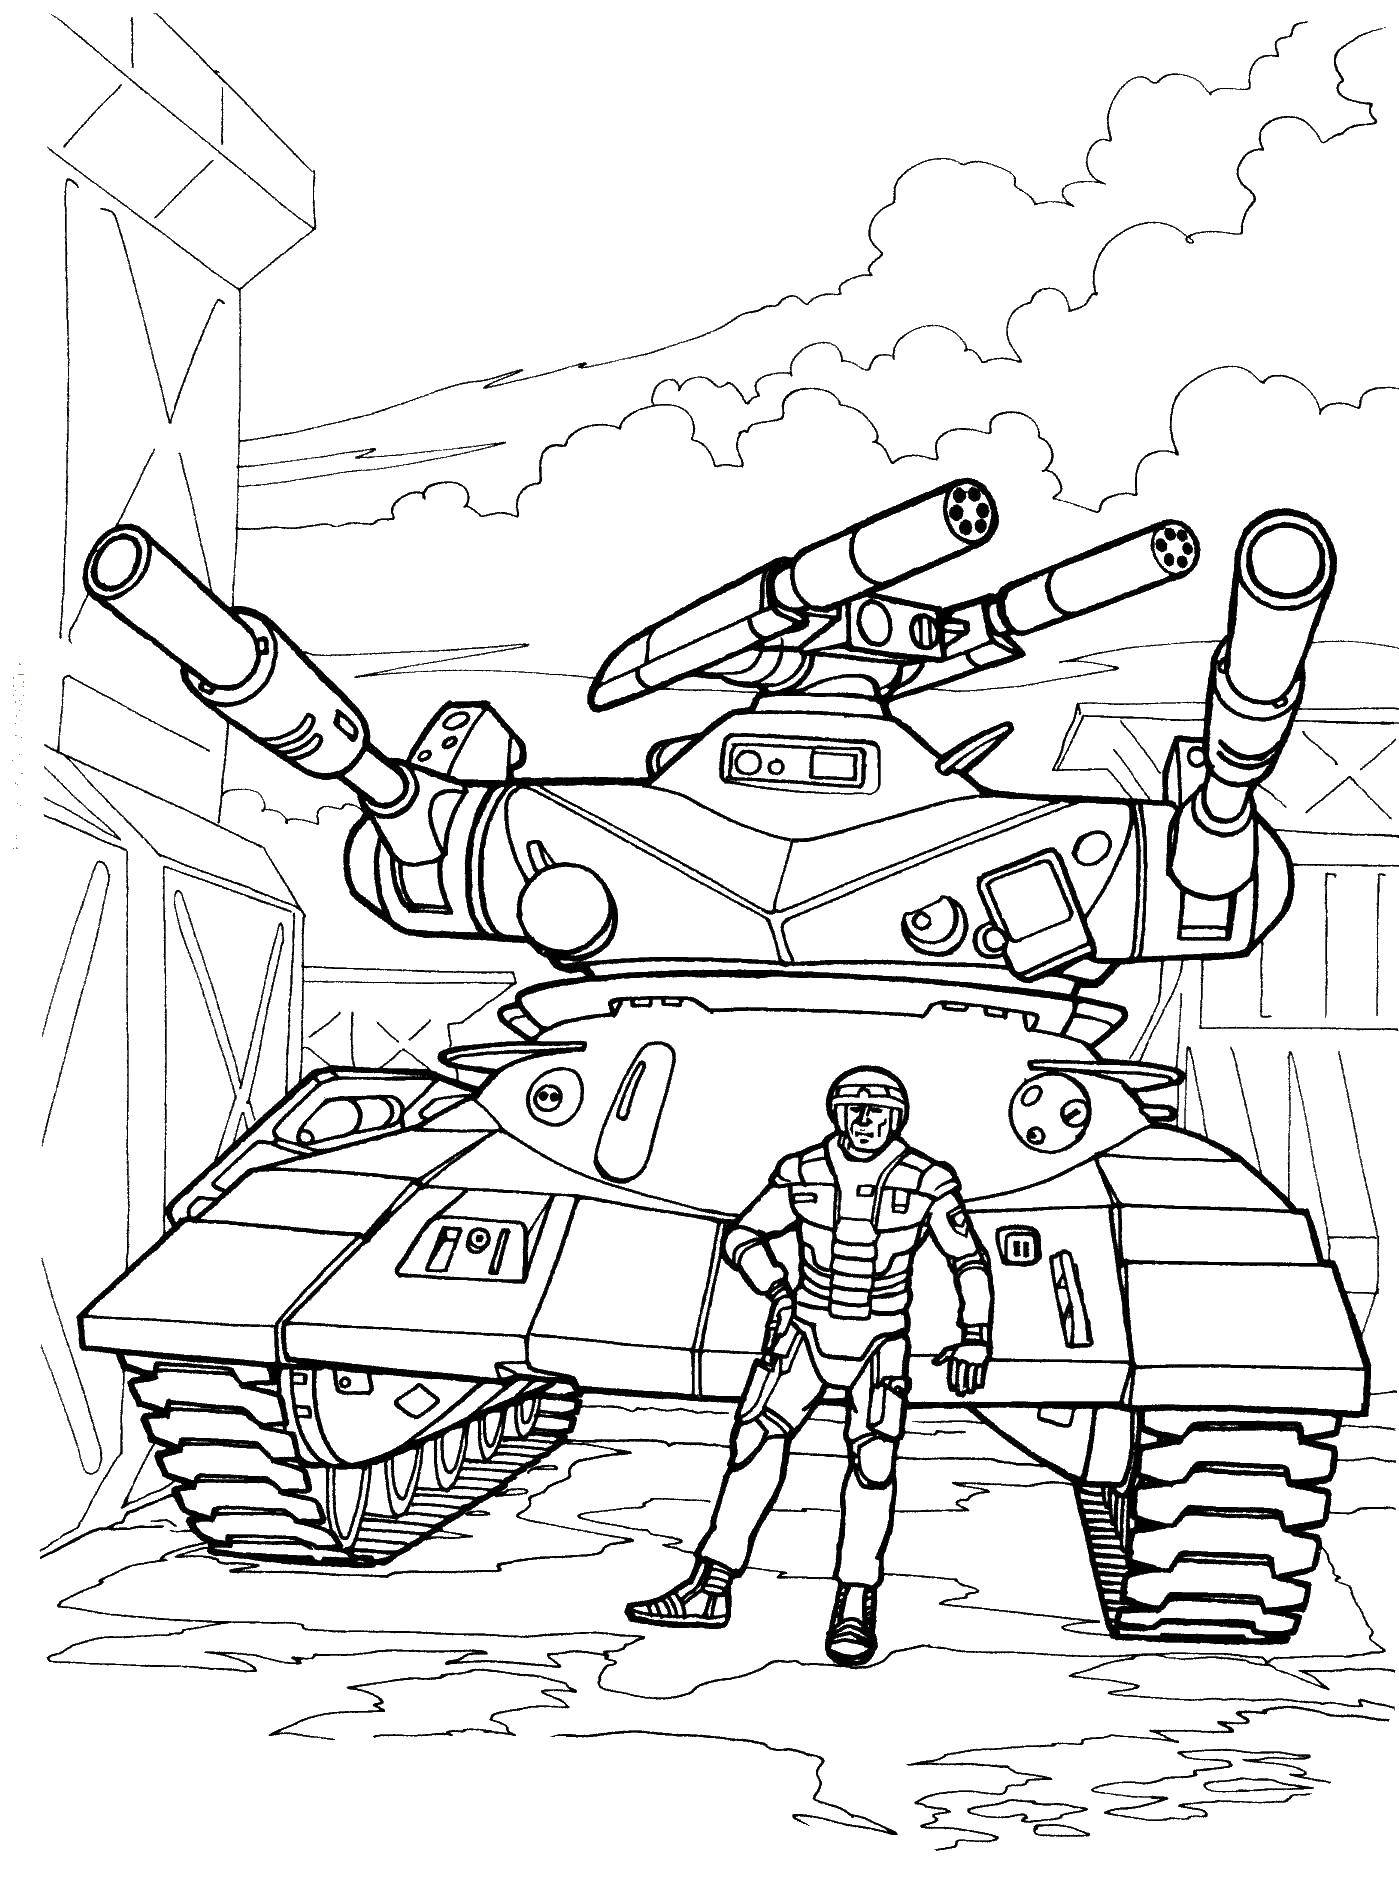 Coloring The soldier in the tank Download soldier, tank, military,.  Print